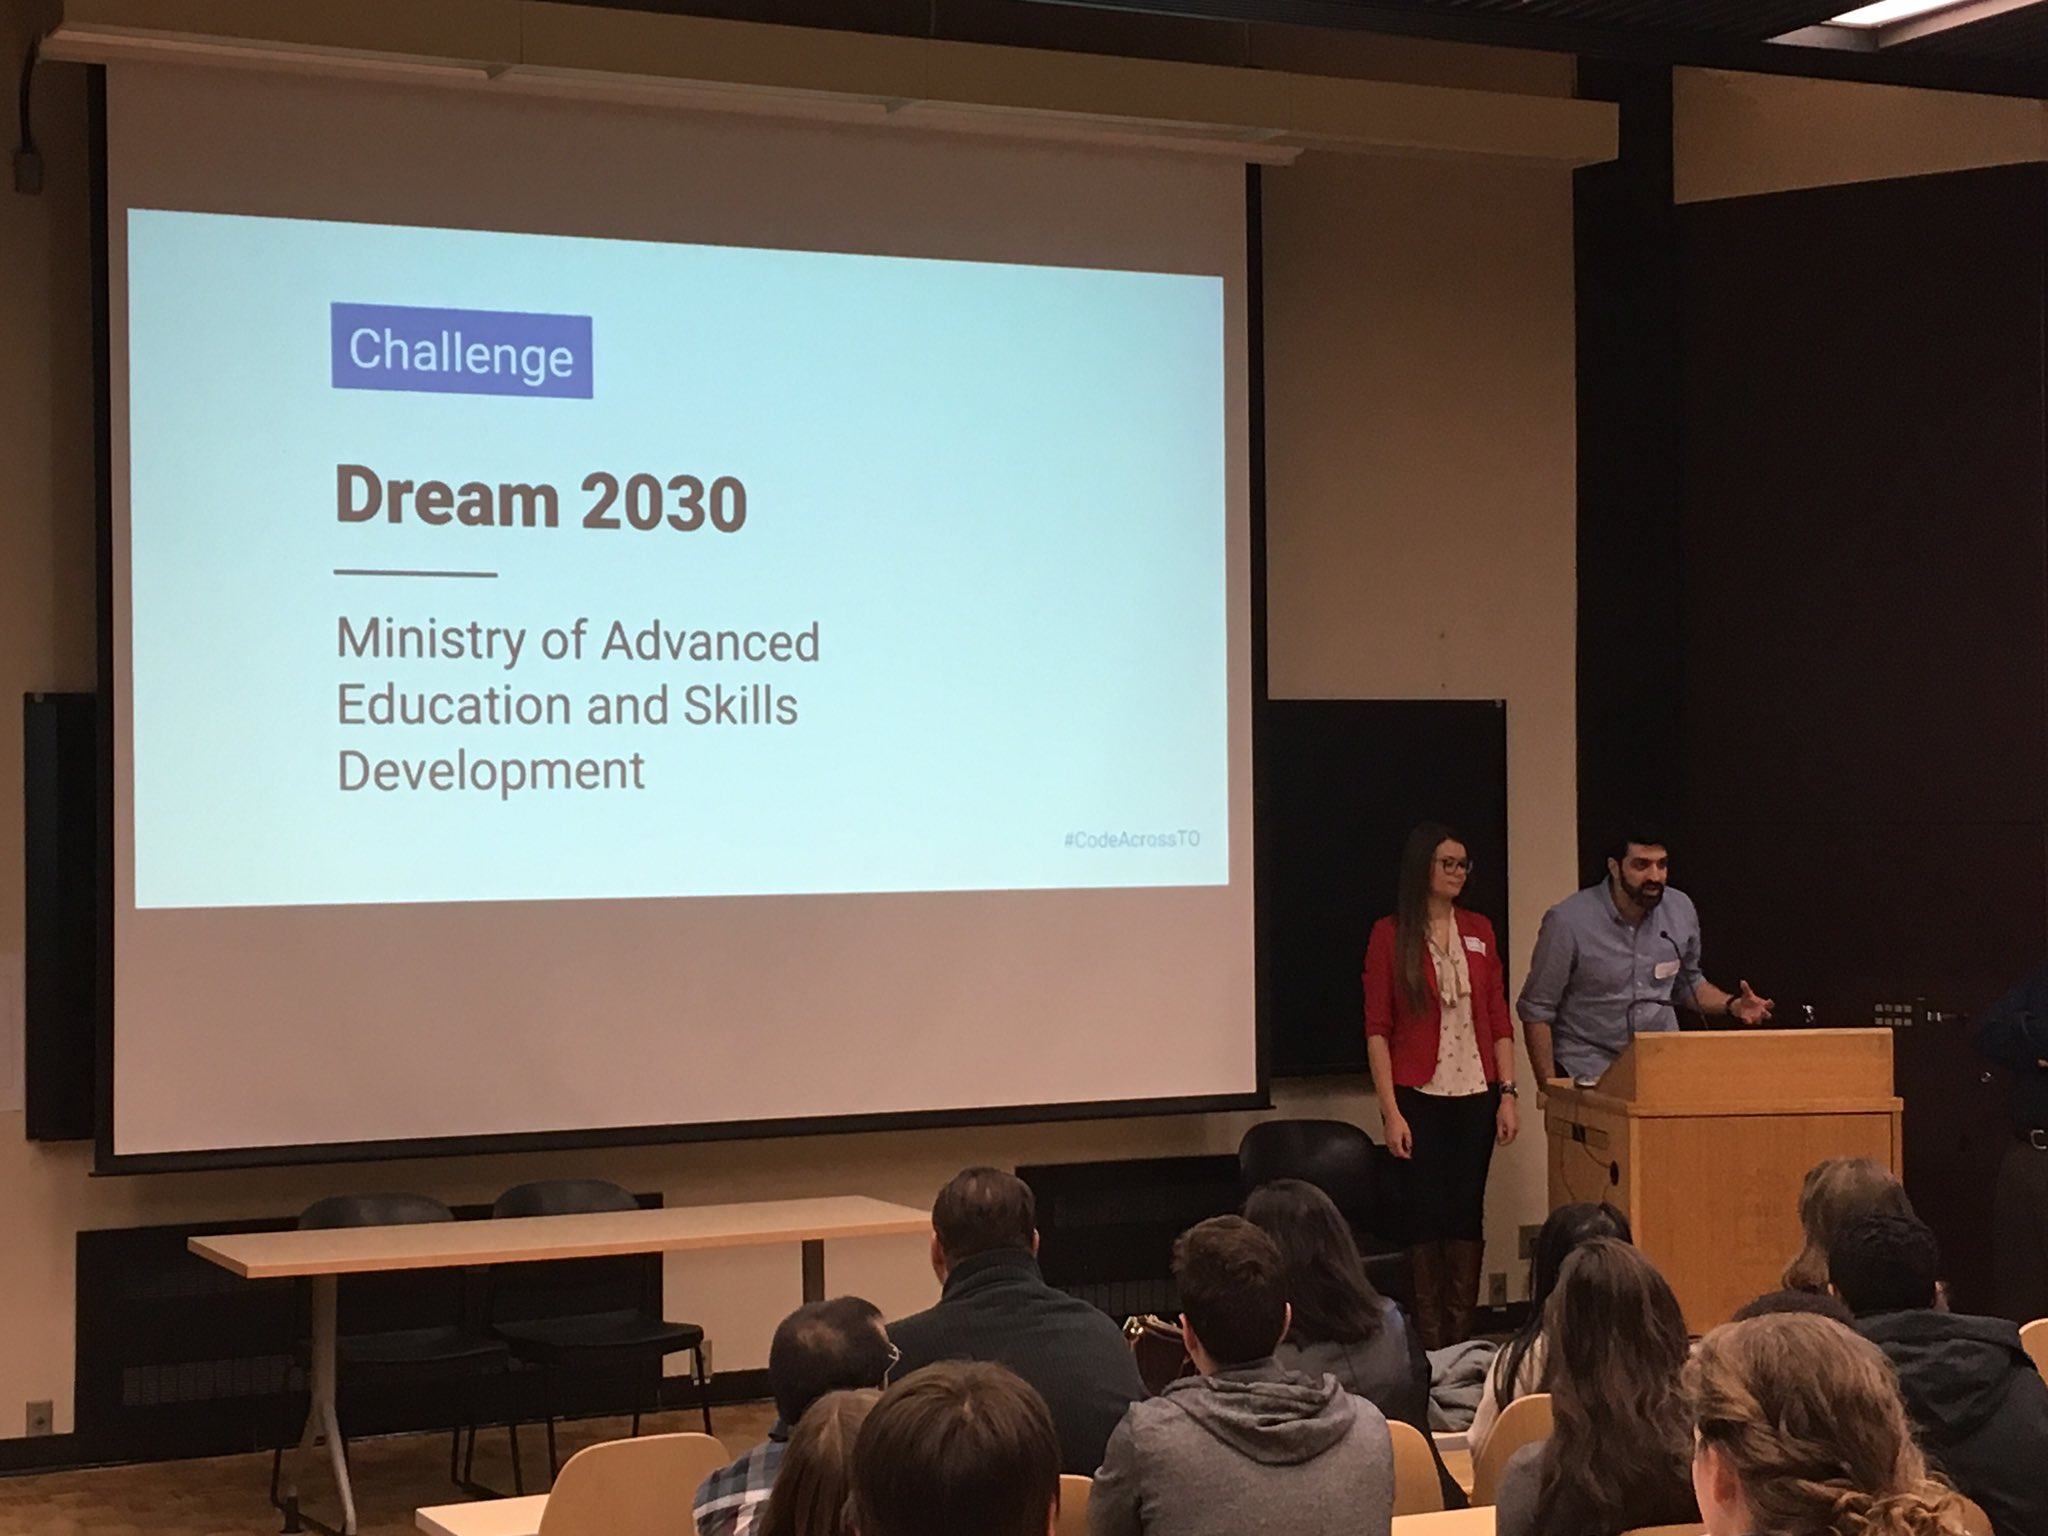 Ministry of Advanced Education and Dkills Dev. re-imagining the digital experience for students choosing post-secondary #CodeAcrossTO https://t.co/GlnAeliMAM